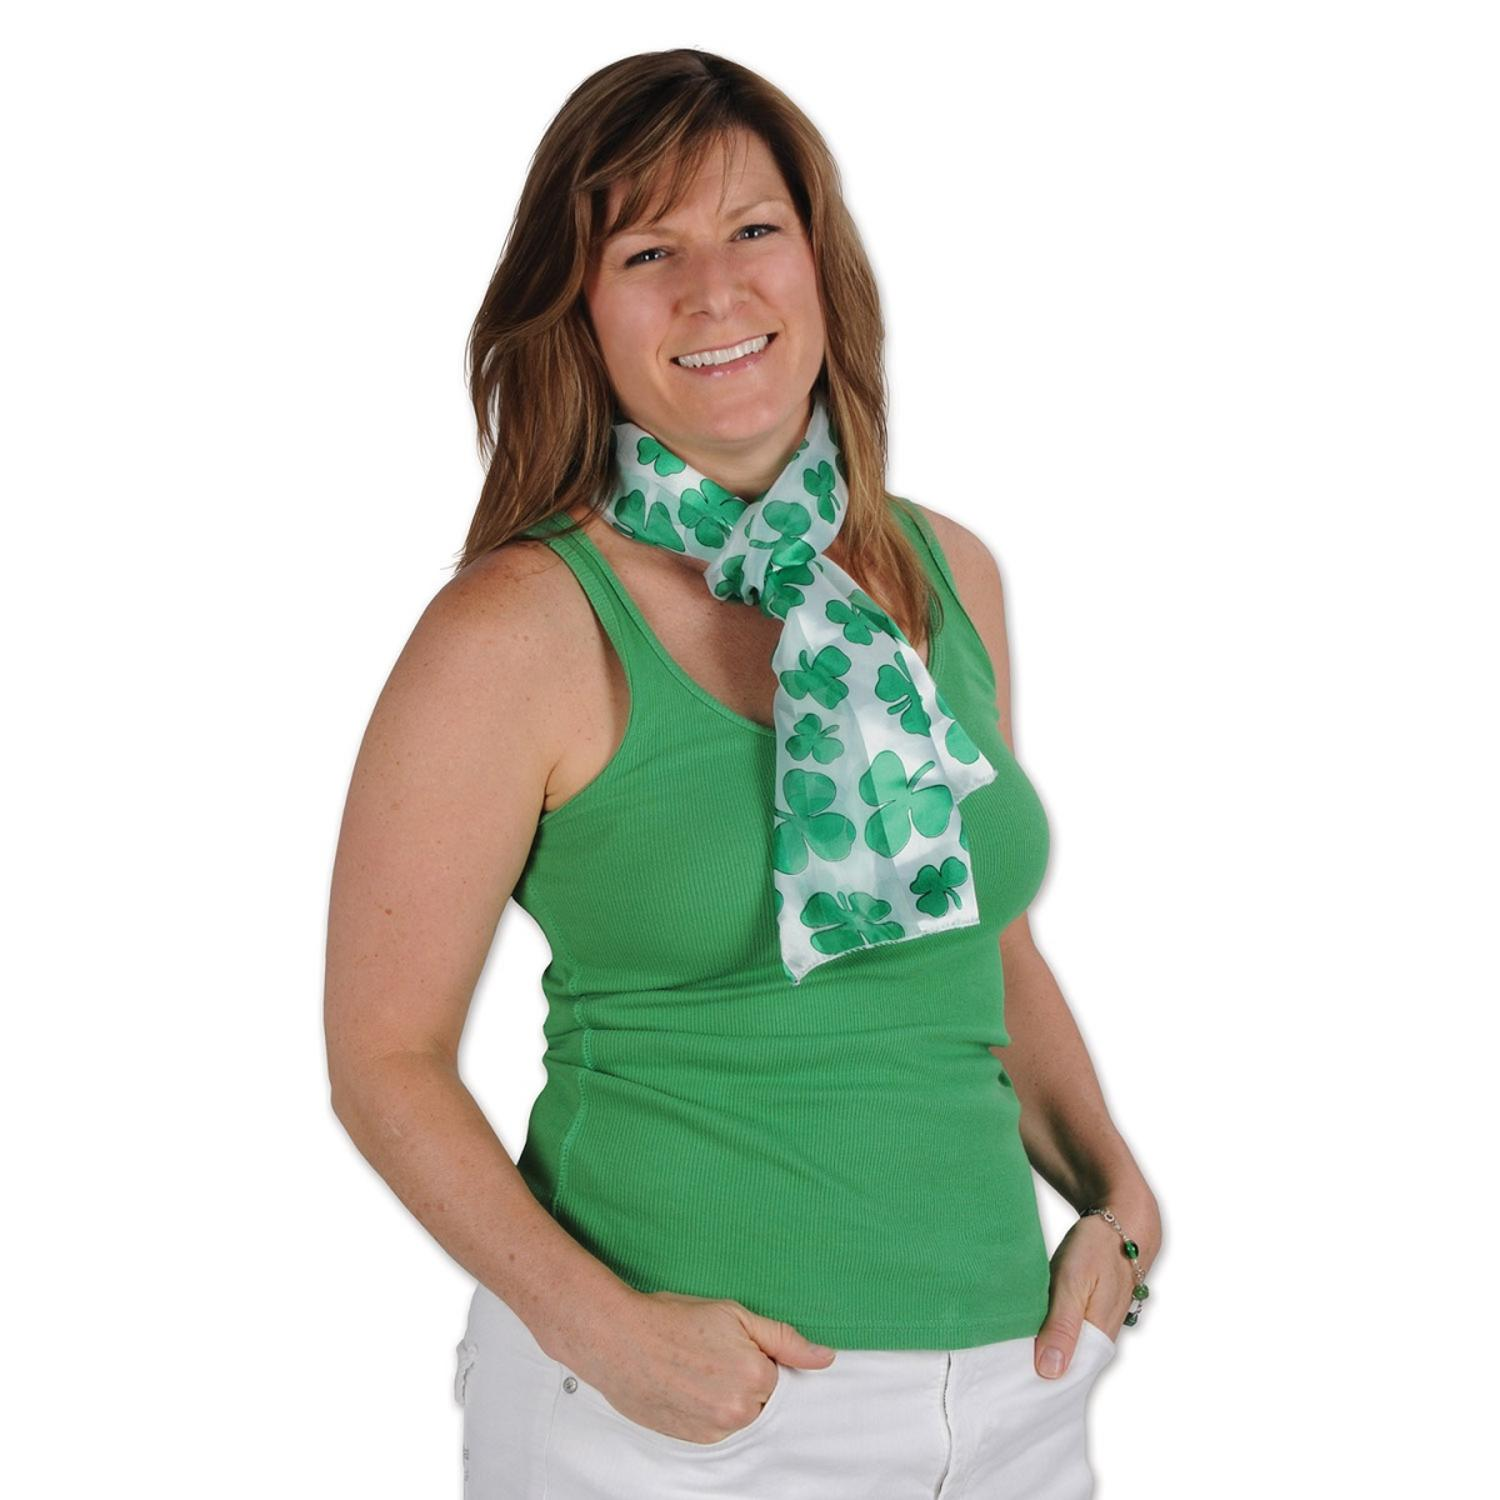 Club Pack of 12 Green and White St. Patrick's Day Shamrock Scarves 55""